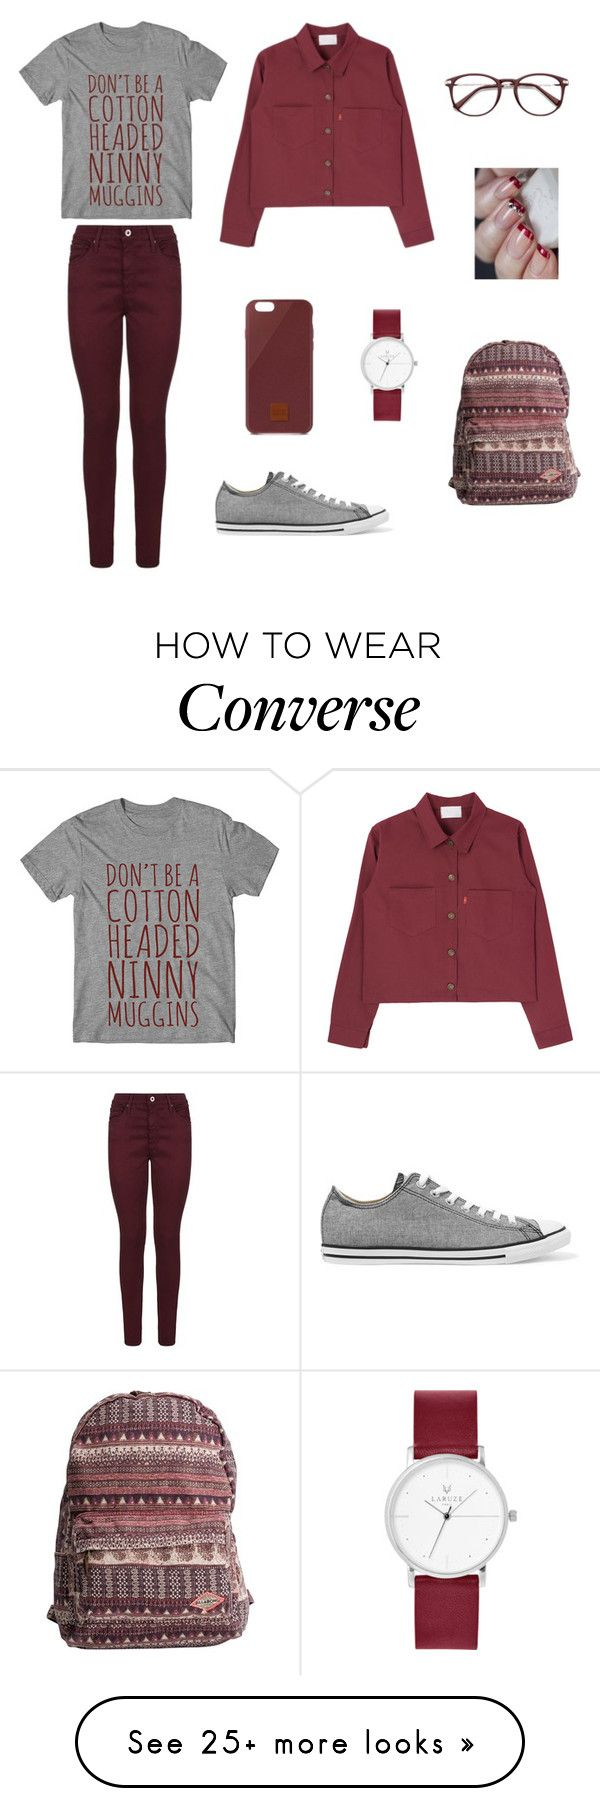 """Untitled #7"" by xxabella on Polyvore featuring AG Adriano Goldschmied, Native Union, Billabong and Converse"